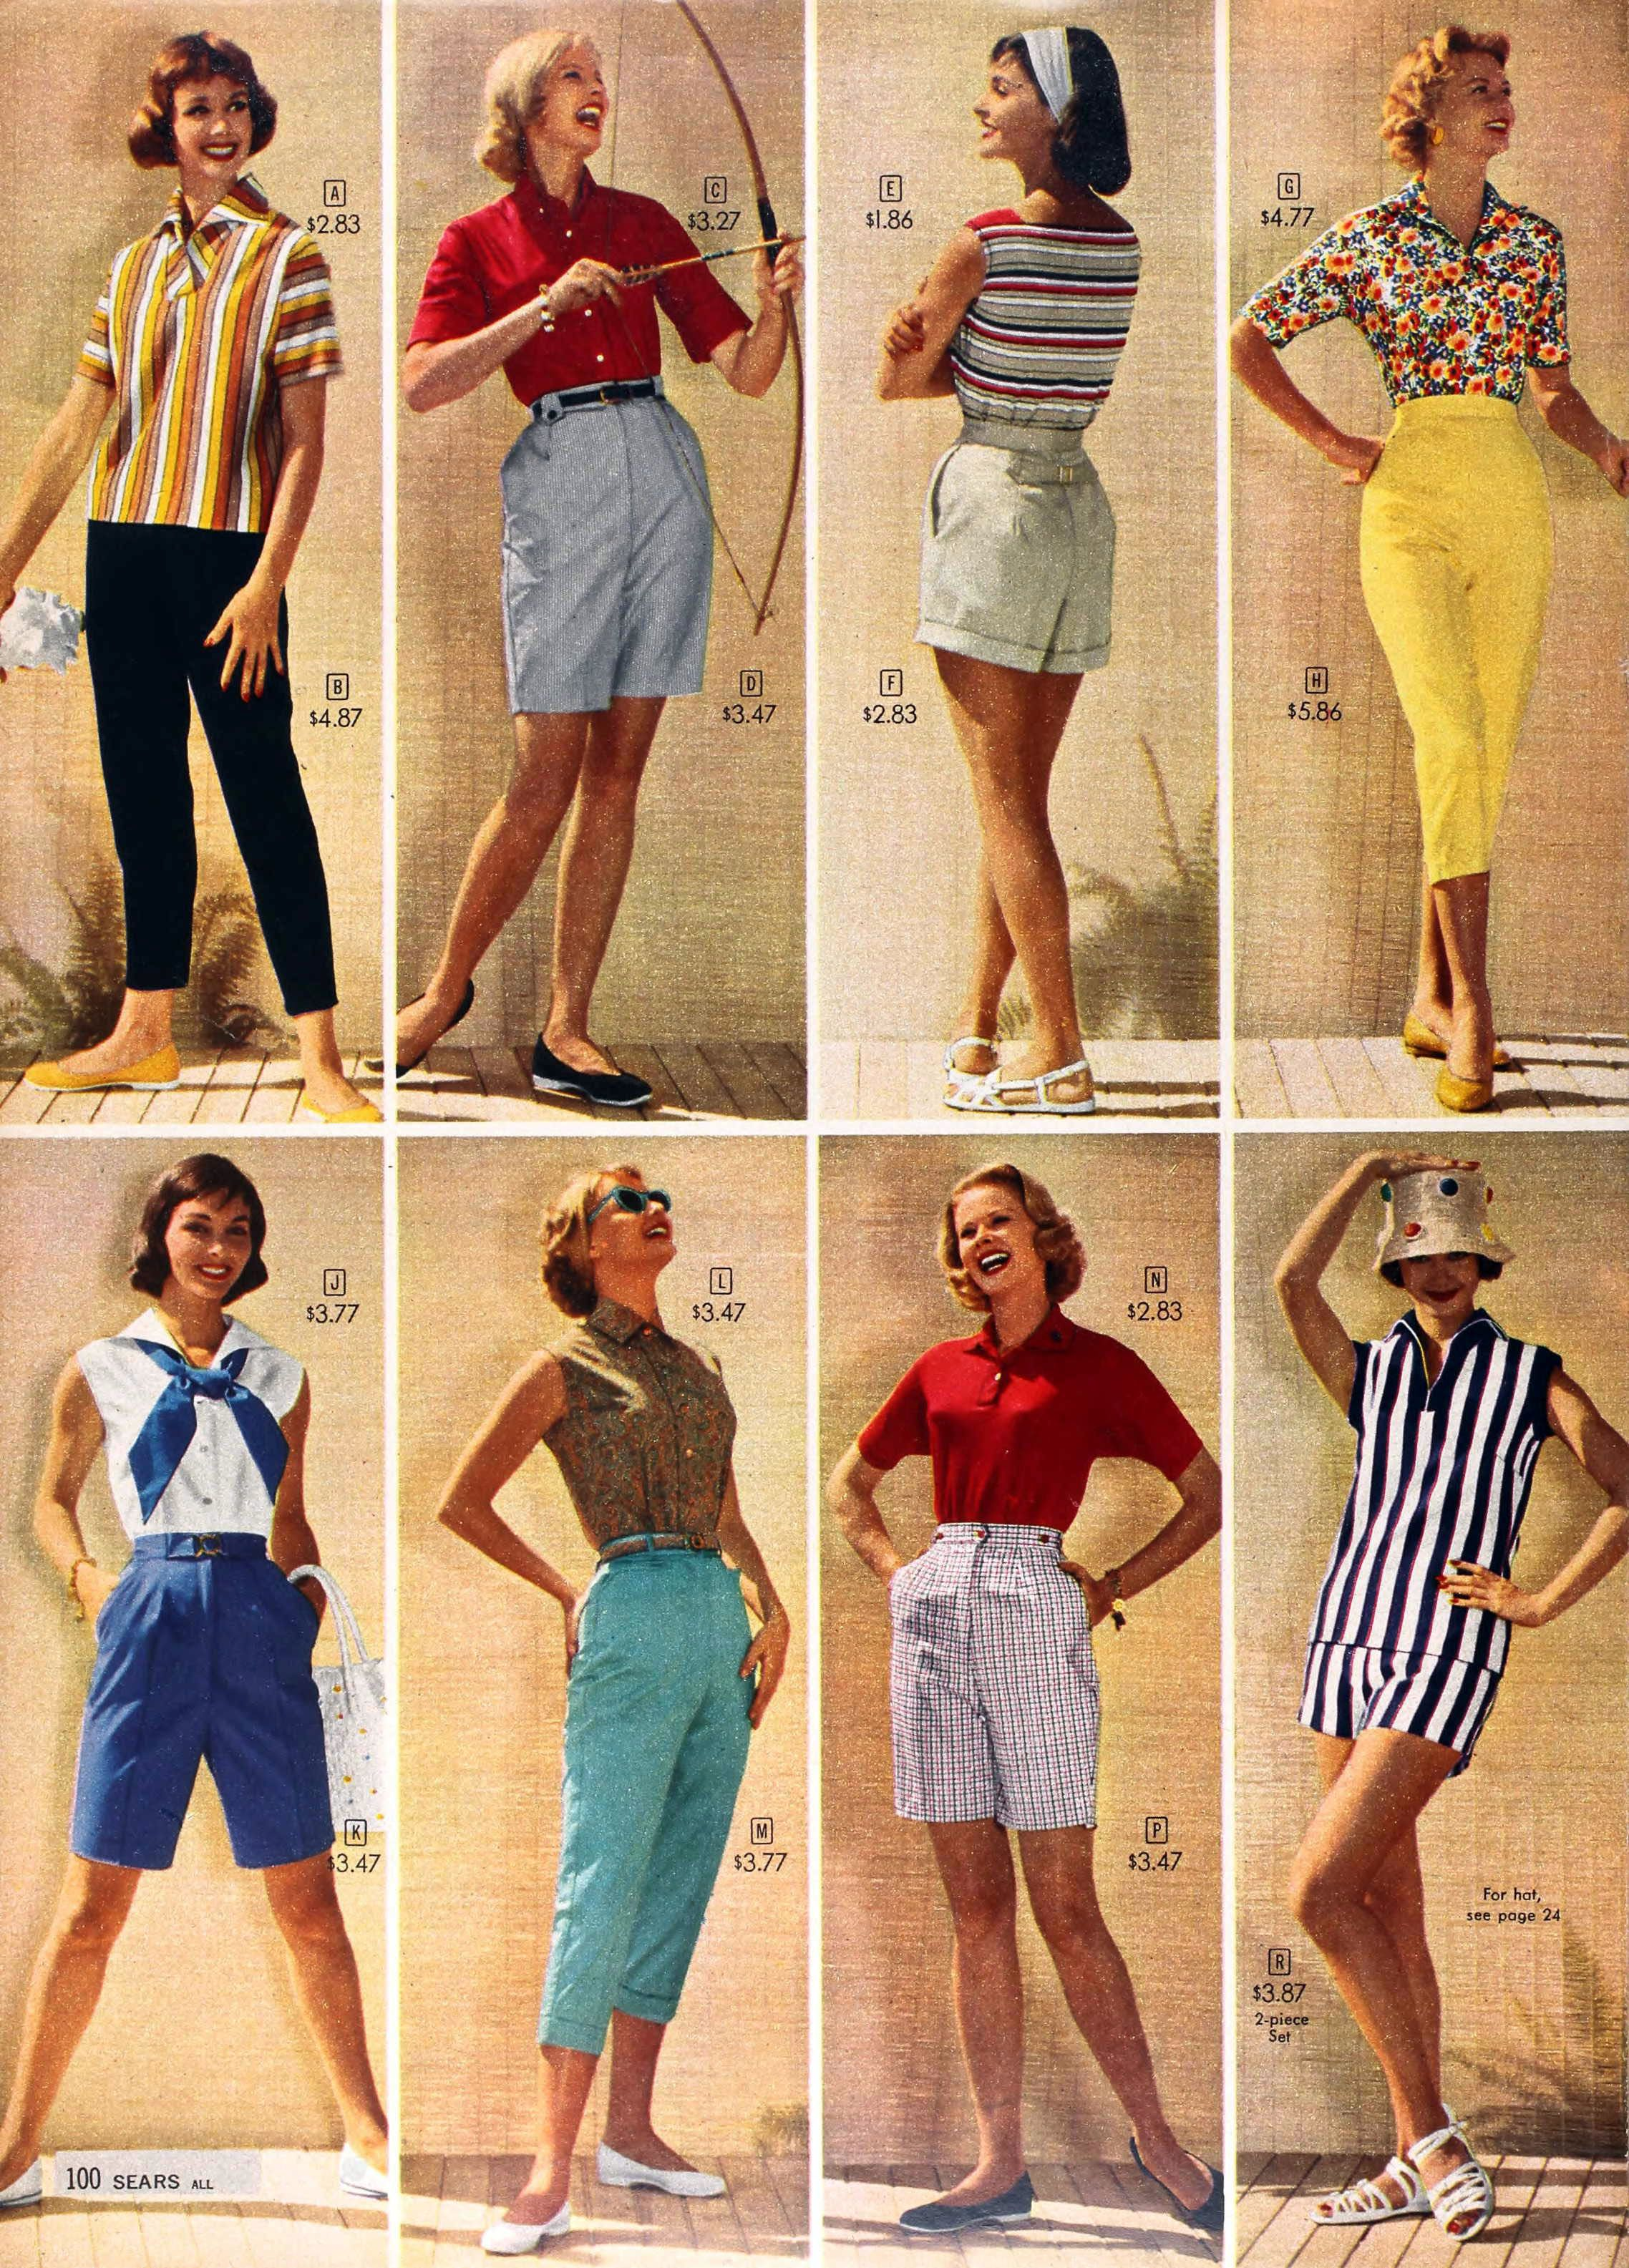 Women's Fashion in 1950s